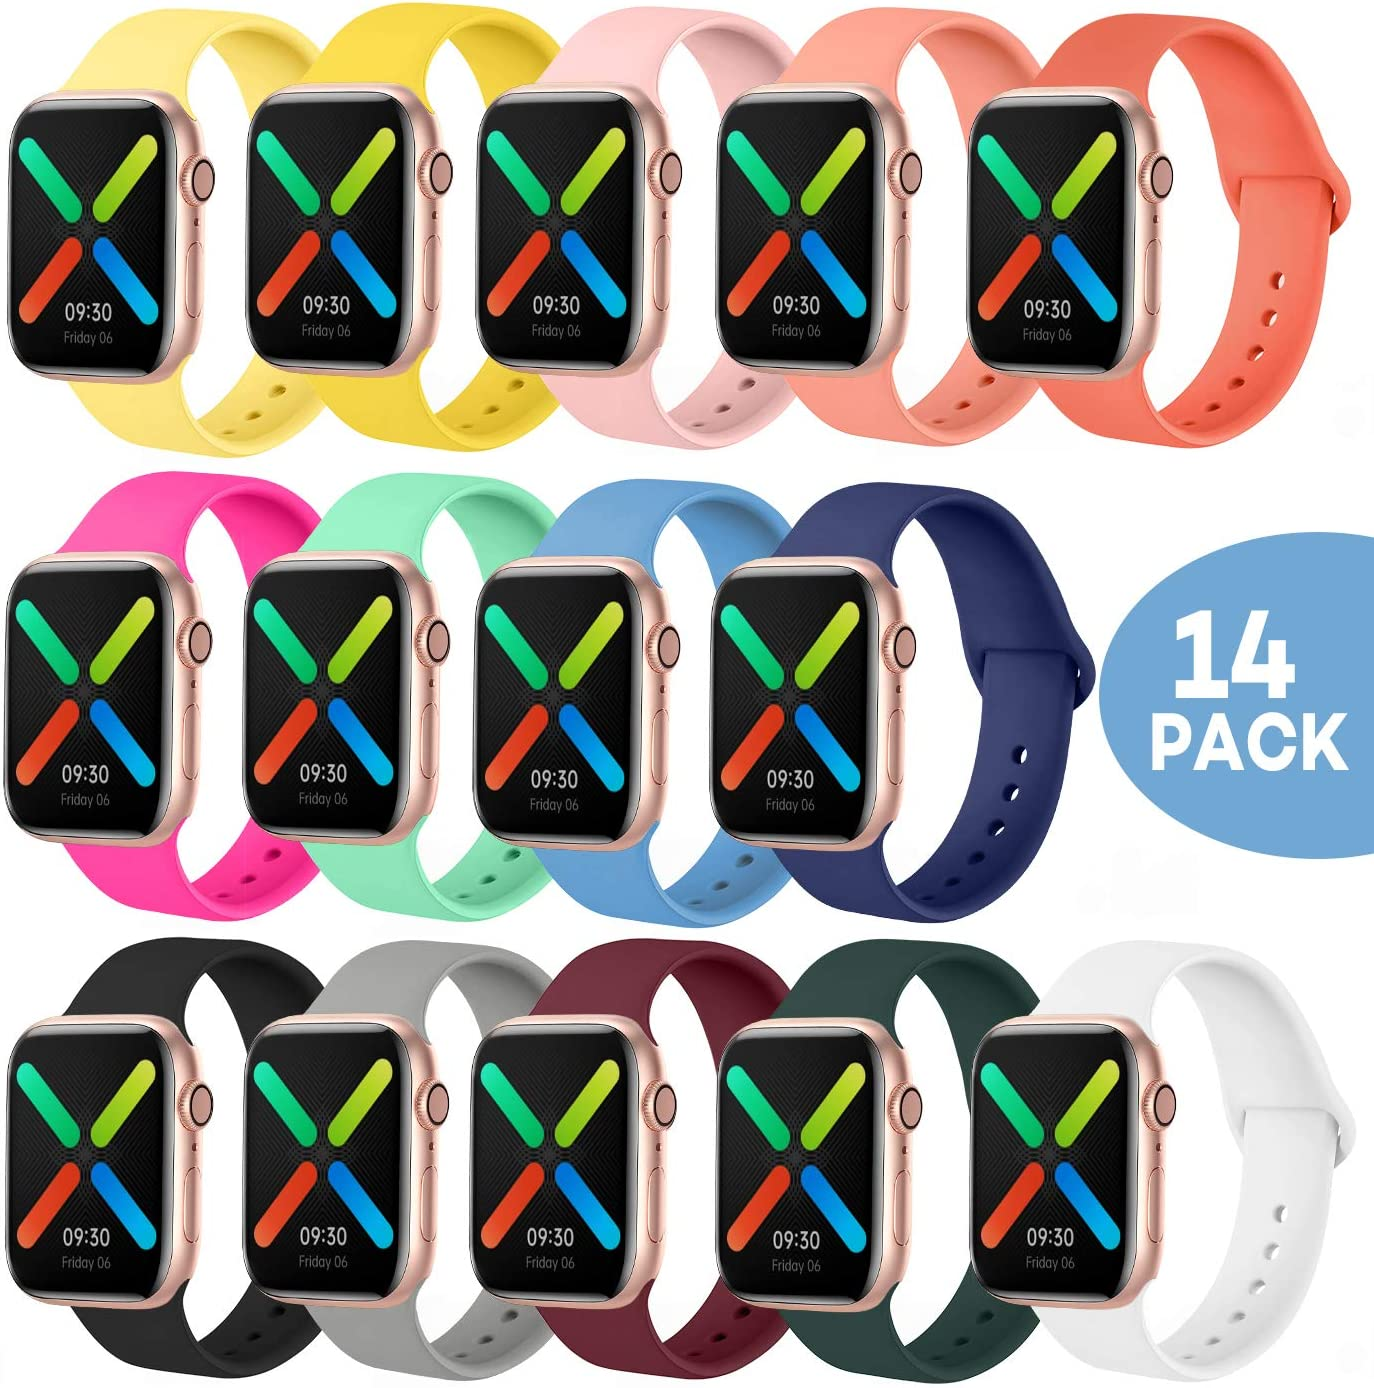 SWHAS Smartwatch Bands Compatible with Apple Watch Band 40mm 38mm 44mm 42mm, Soft Silicone Sport Band Replacement Wristband for iWatch Series 5/4/3/2/1